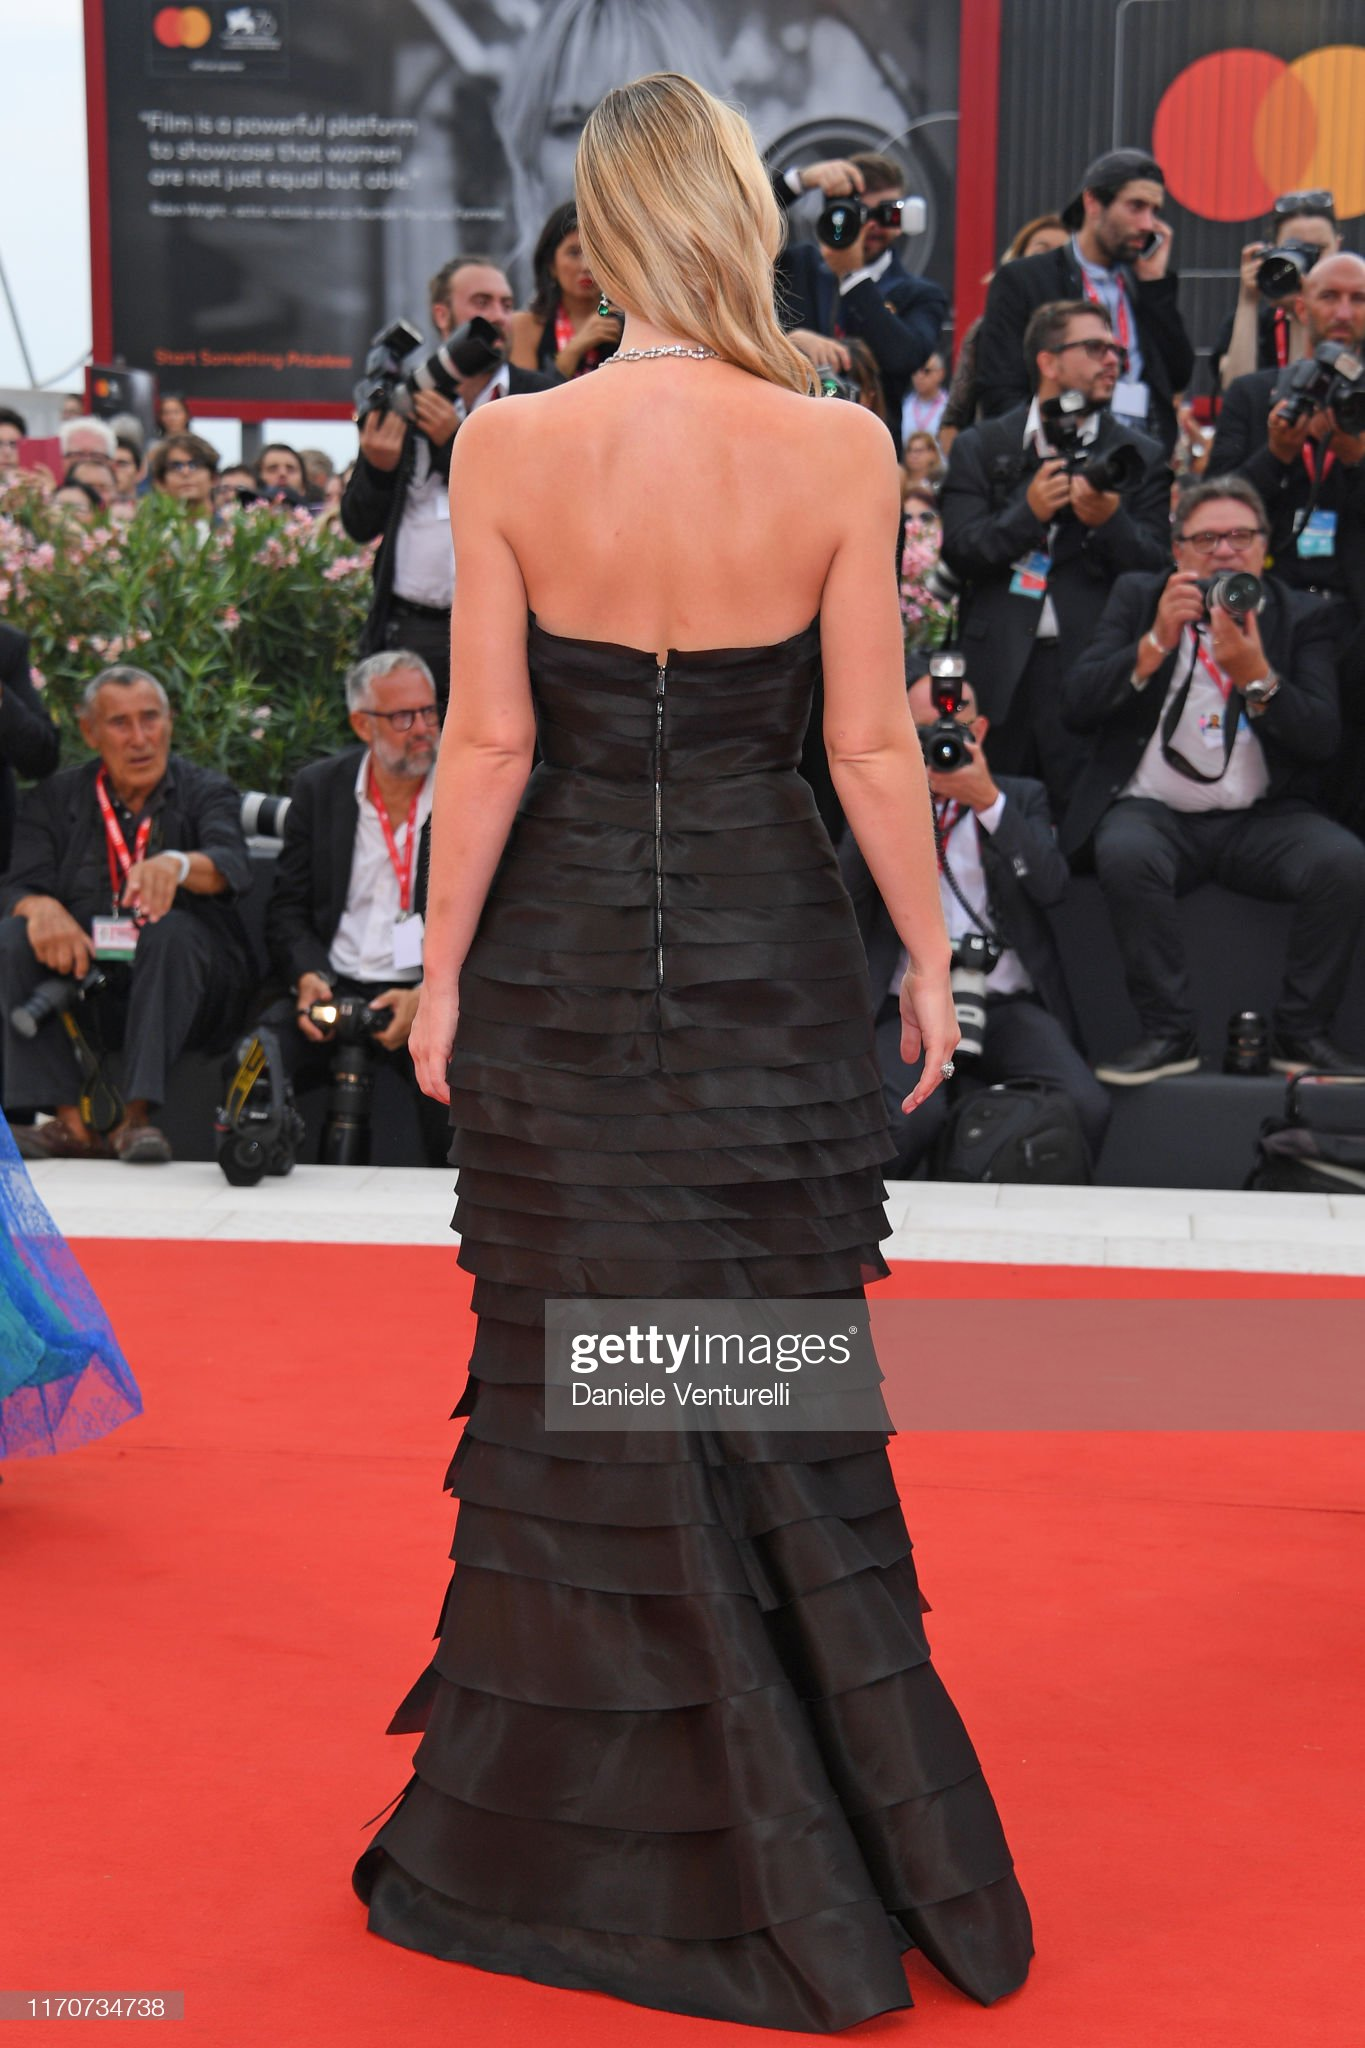 https://media.gettyimages.com/photos/lady-kitty-spencer-walks-the-red-carpet-ahead-of-the-opening-ceremony-picture-id1170734738?s=2048x2048